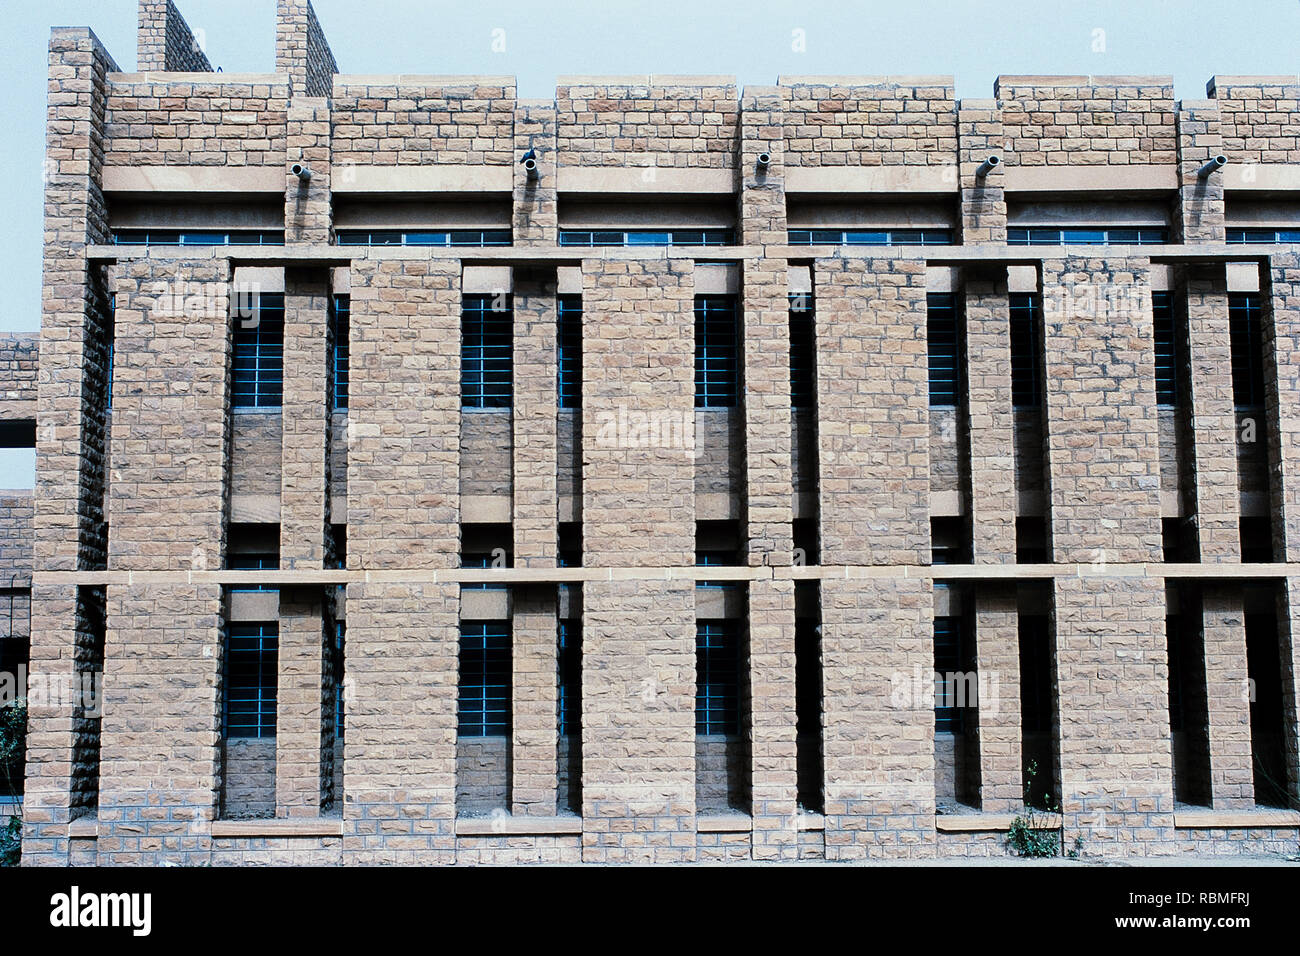 Exterior of Faculty of Science, Jodhpur, Rajasthan, India, Asia - Stock Image